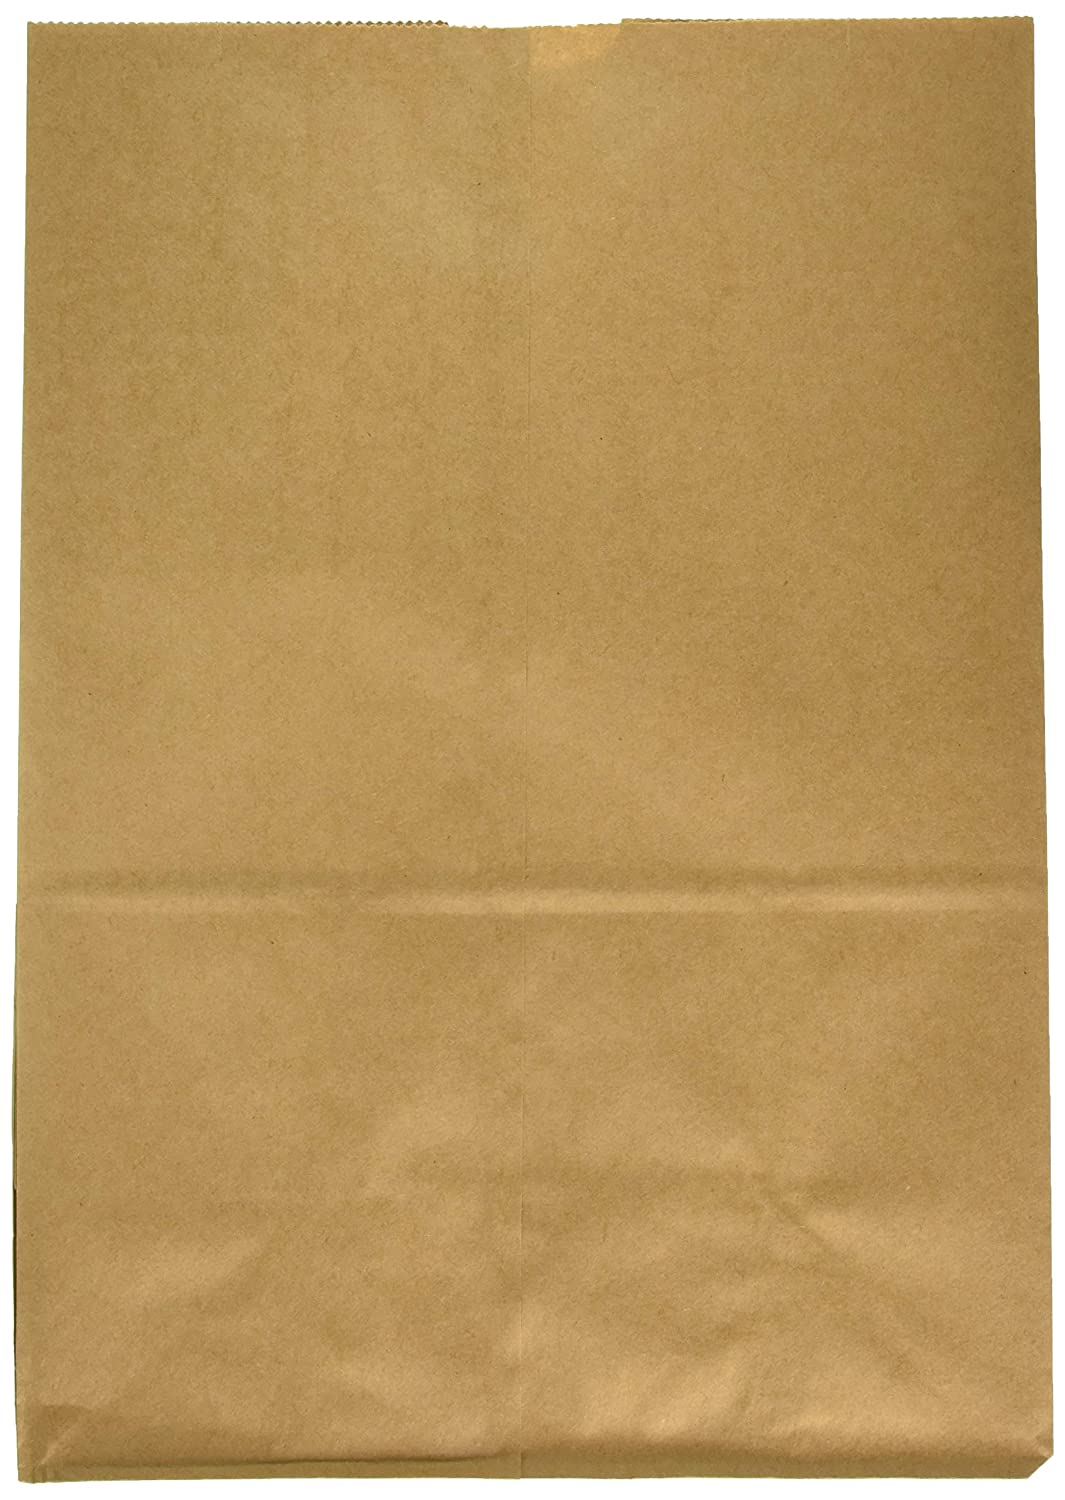 Duro Heavy Duty Kraft Brown Paper Barrel Sack Bag, 57 Lbs Basis Weight, 12 x 7 x 17, 25 Ct/Pack, 25 Pack